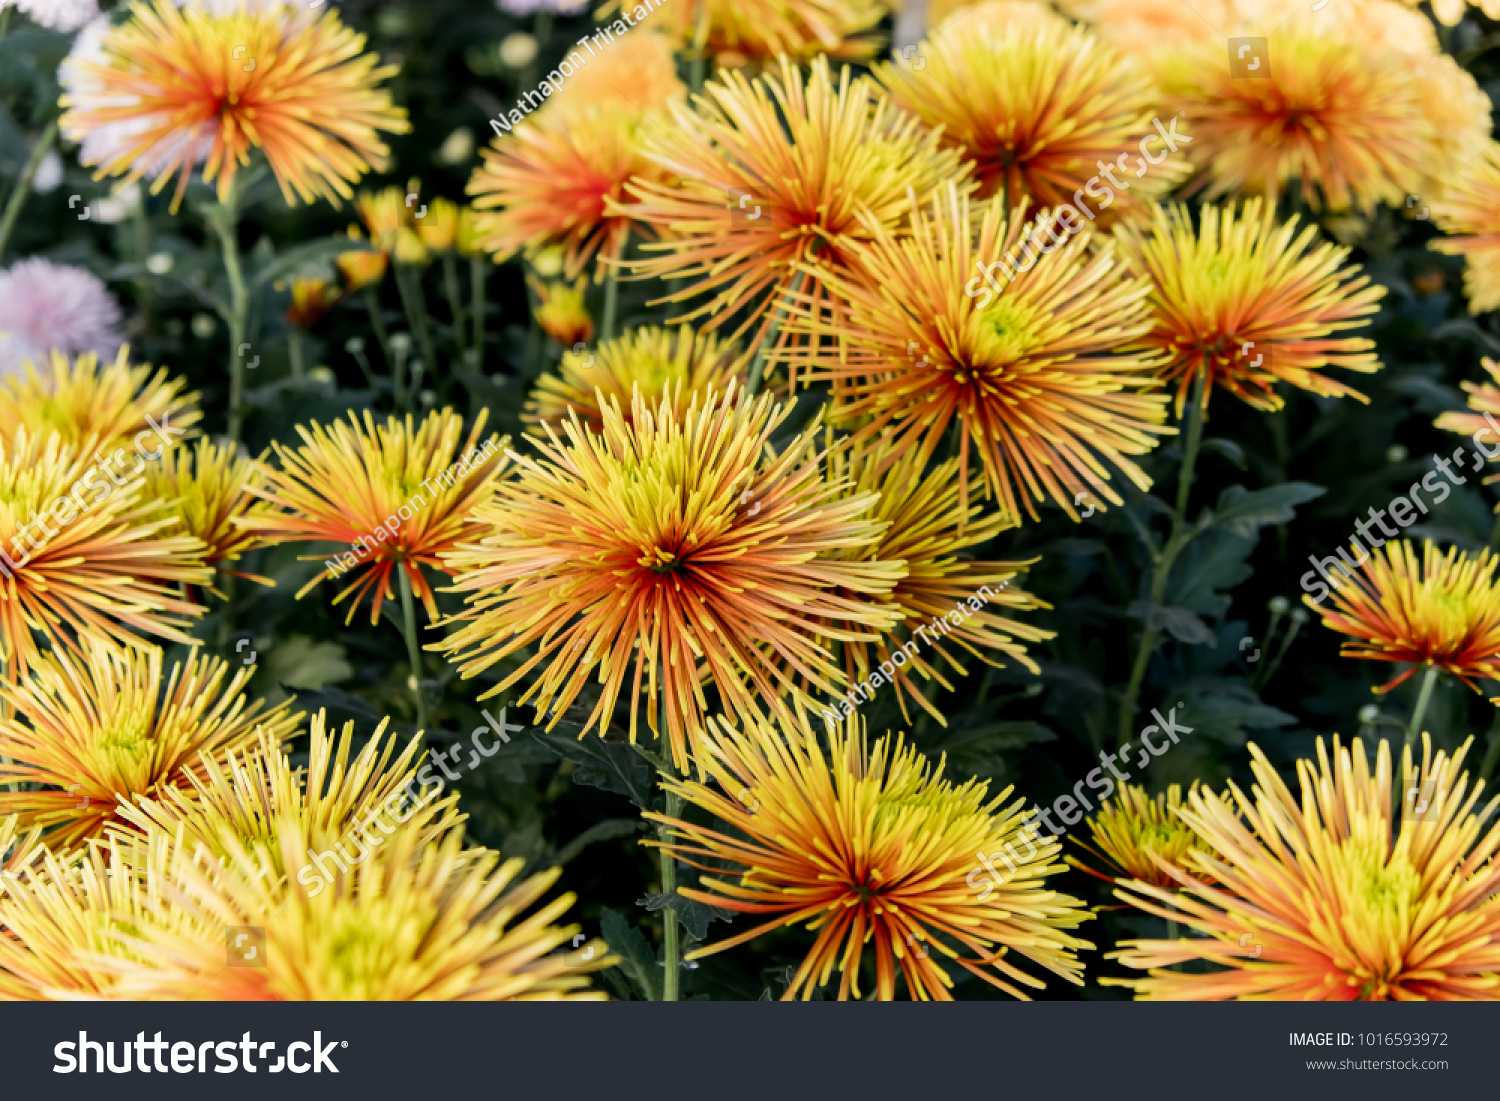 Chrysanthemum Chispaispa Means Sparkle In Spanish And That